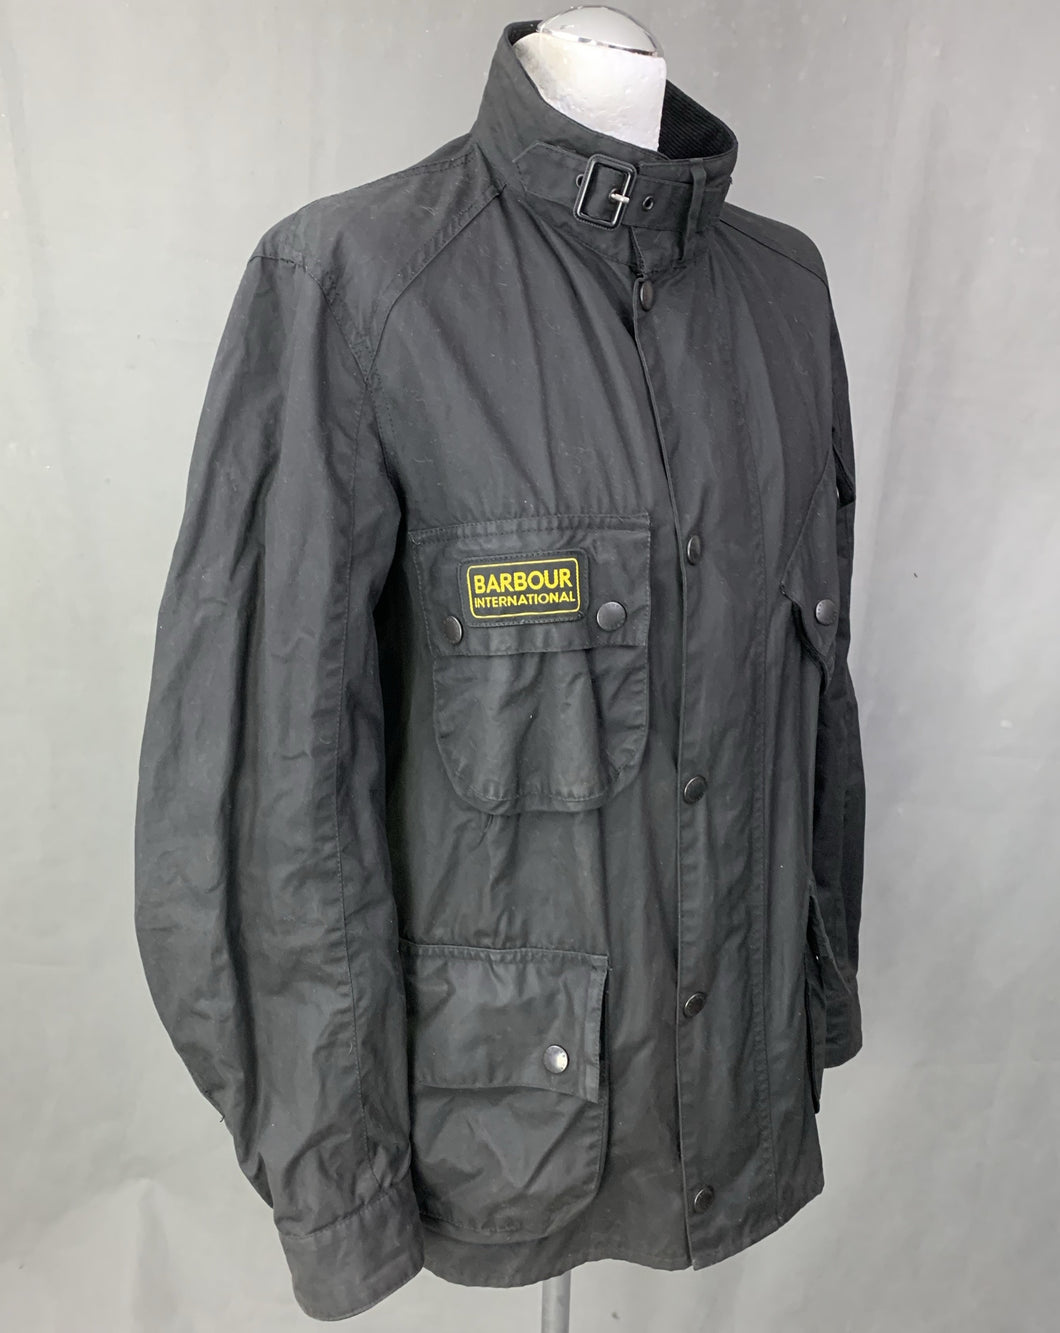 BARBOUR INTERNATIONAL Mens WAXED TRIALS JACKET / COAT Size LARGE - L